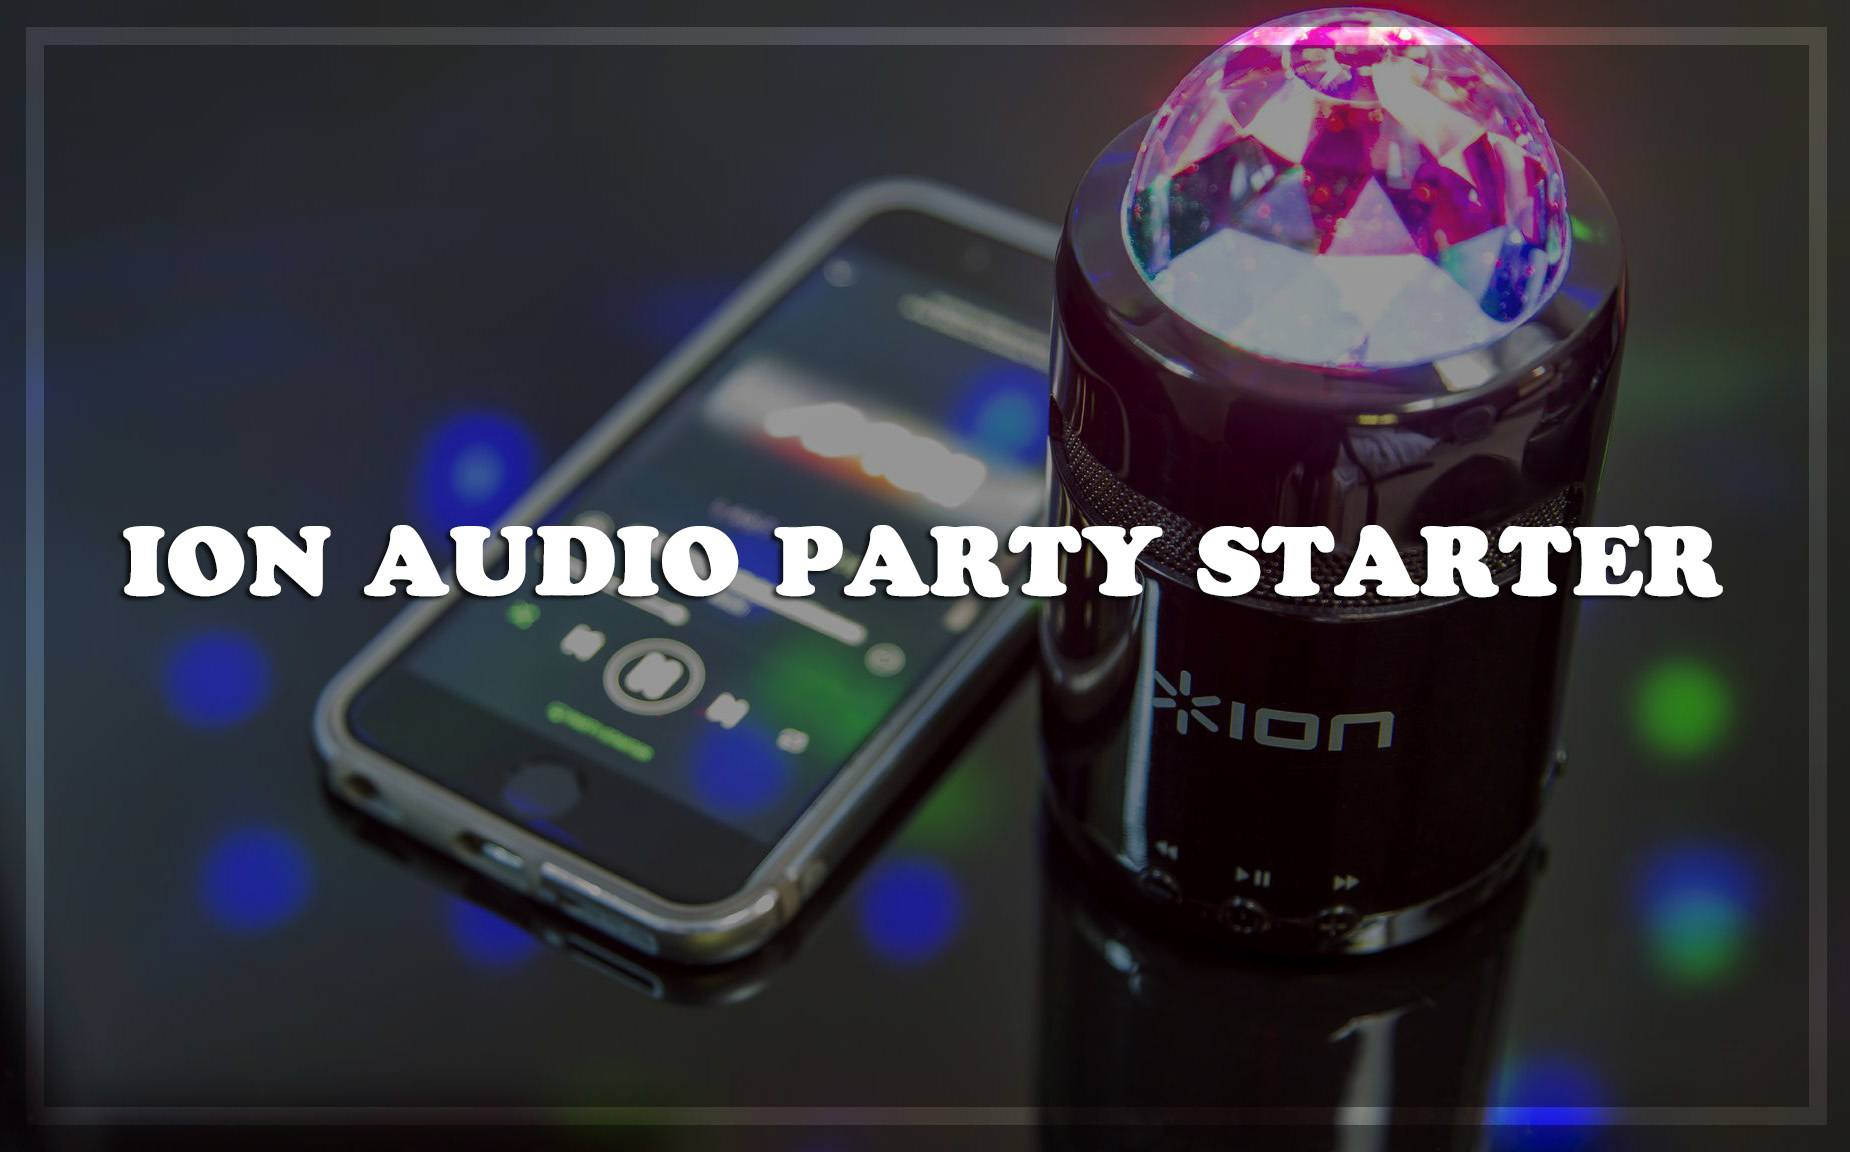 Ion Audio Party Starter Karaoke System Review